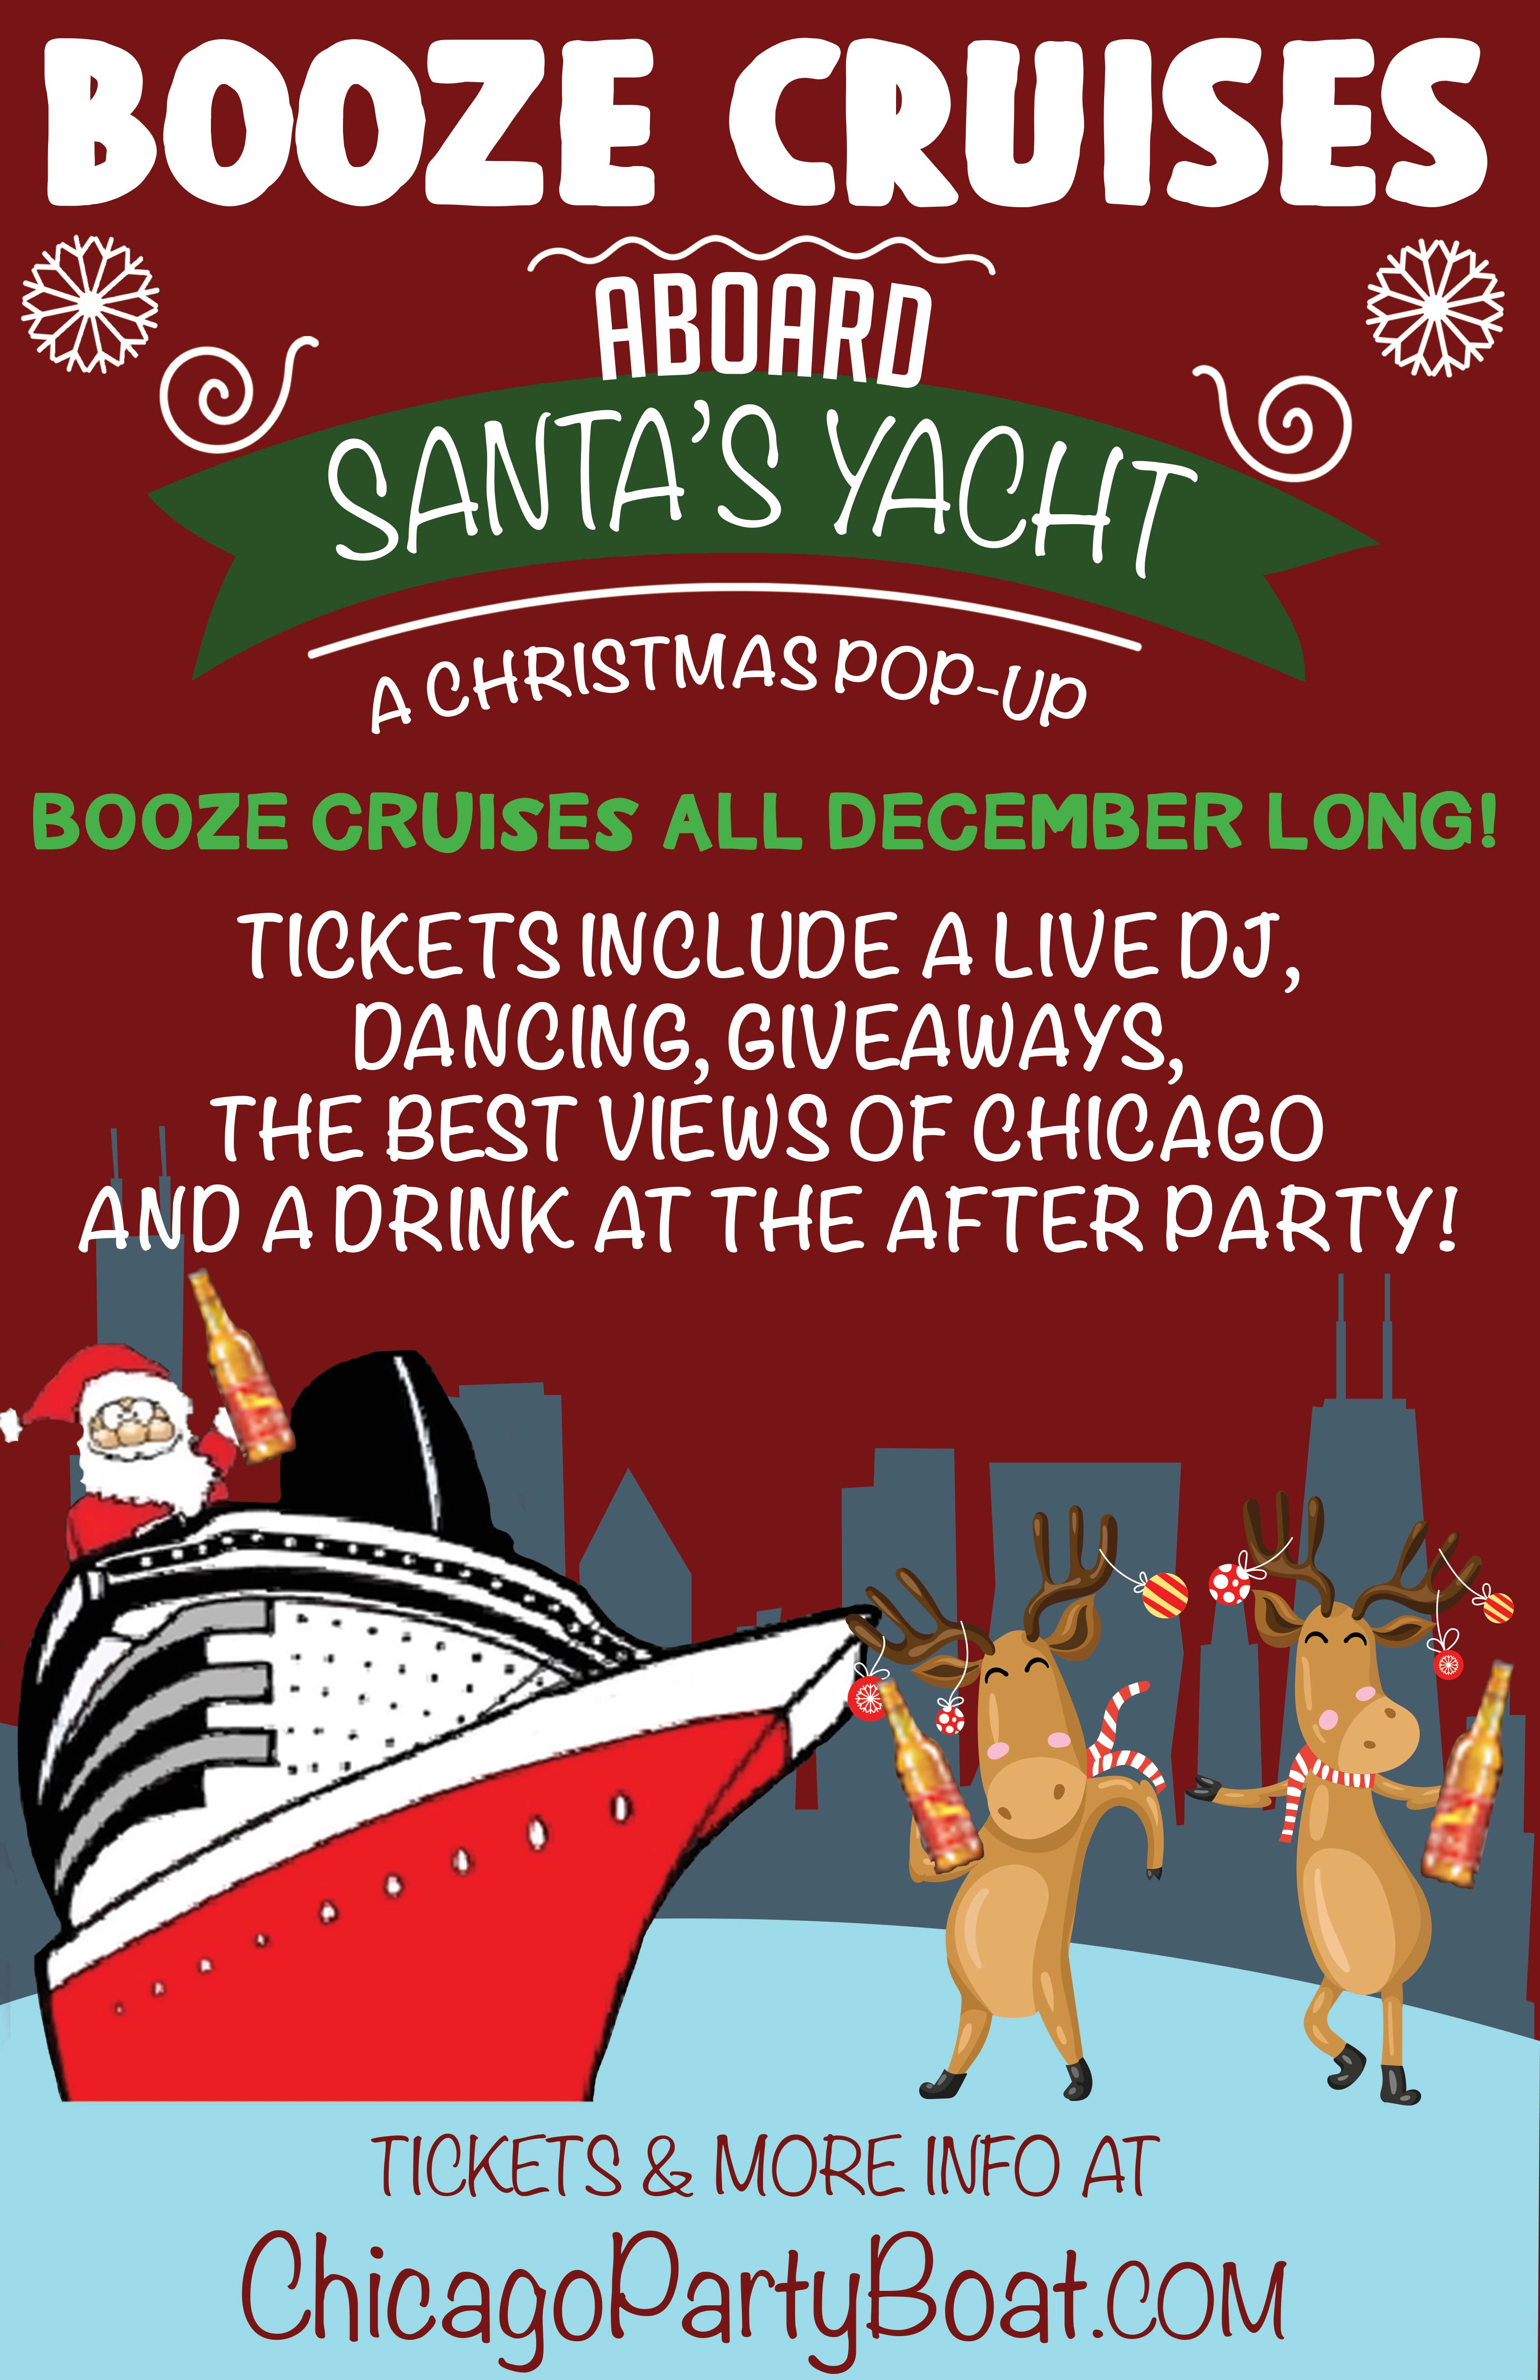 Booze Cruise Party on Santa's Yacht - Tickets include a Live DJ, Dancing, Giveaways, a drink at the after party and the best views of Chicago